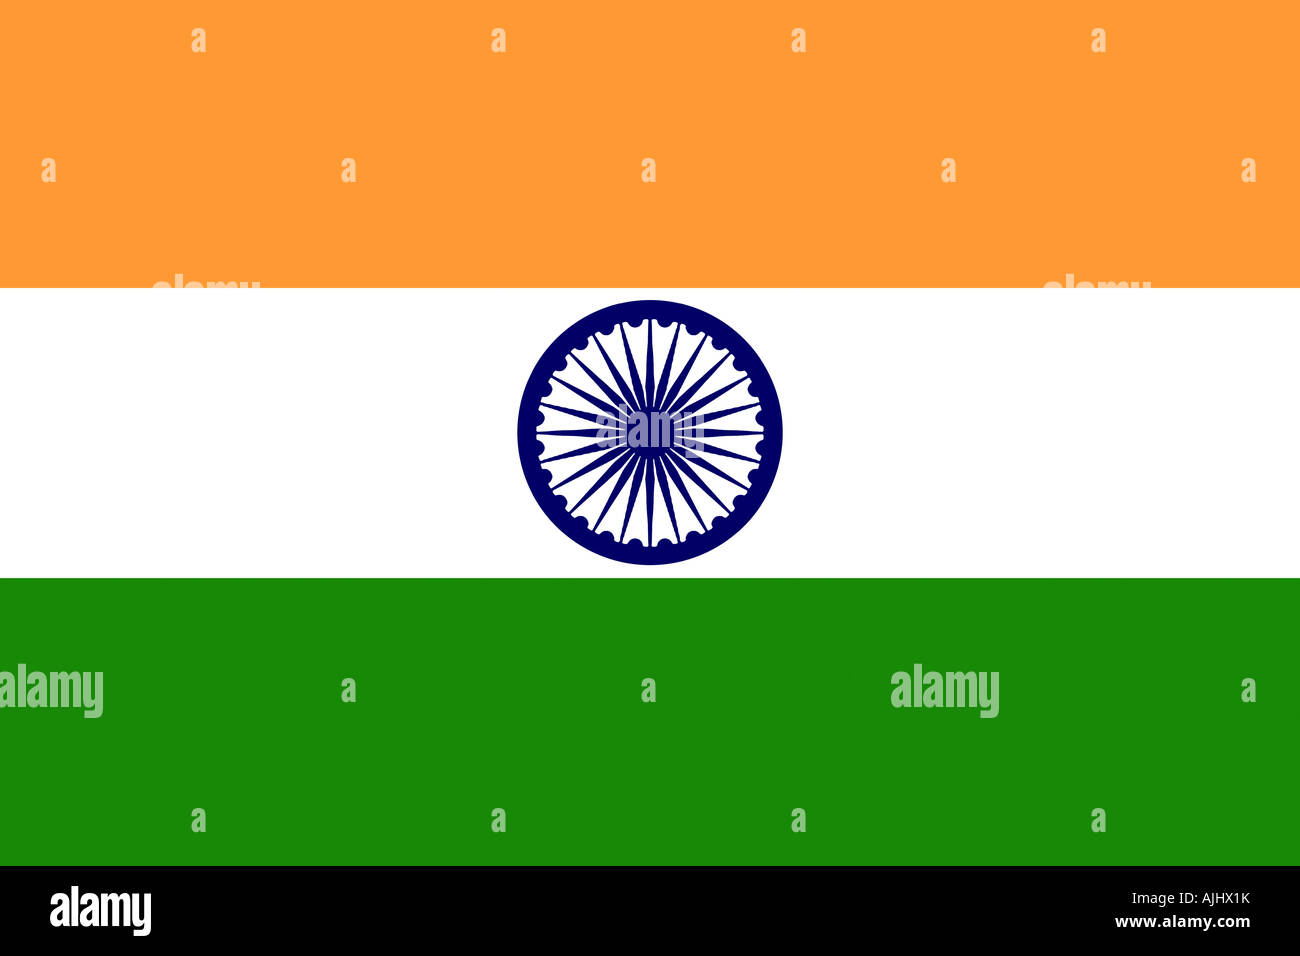 National Flag Of India: Indian Flag Stock Photos & Indian Flag Stock Images